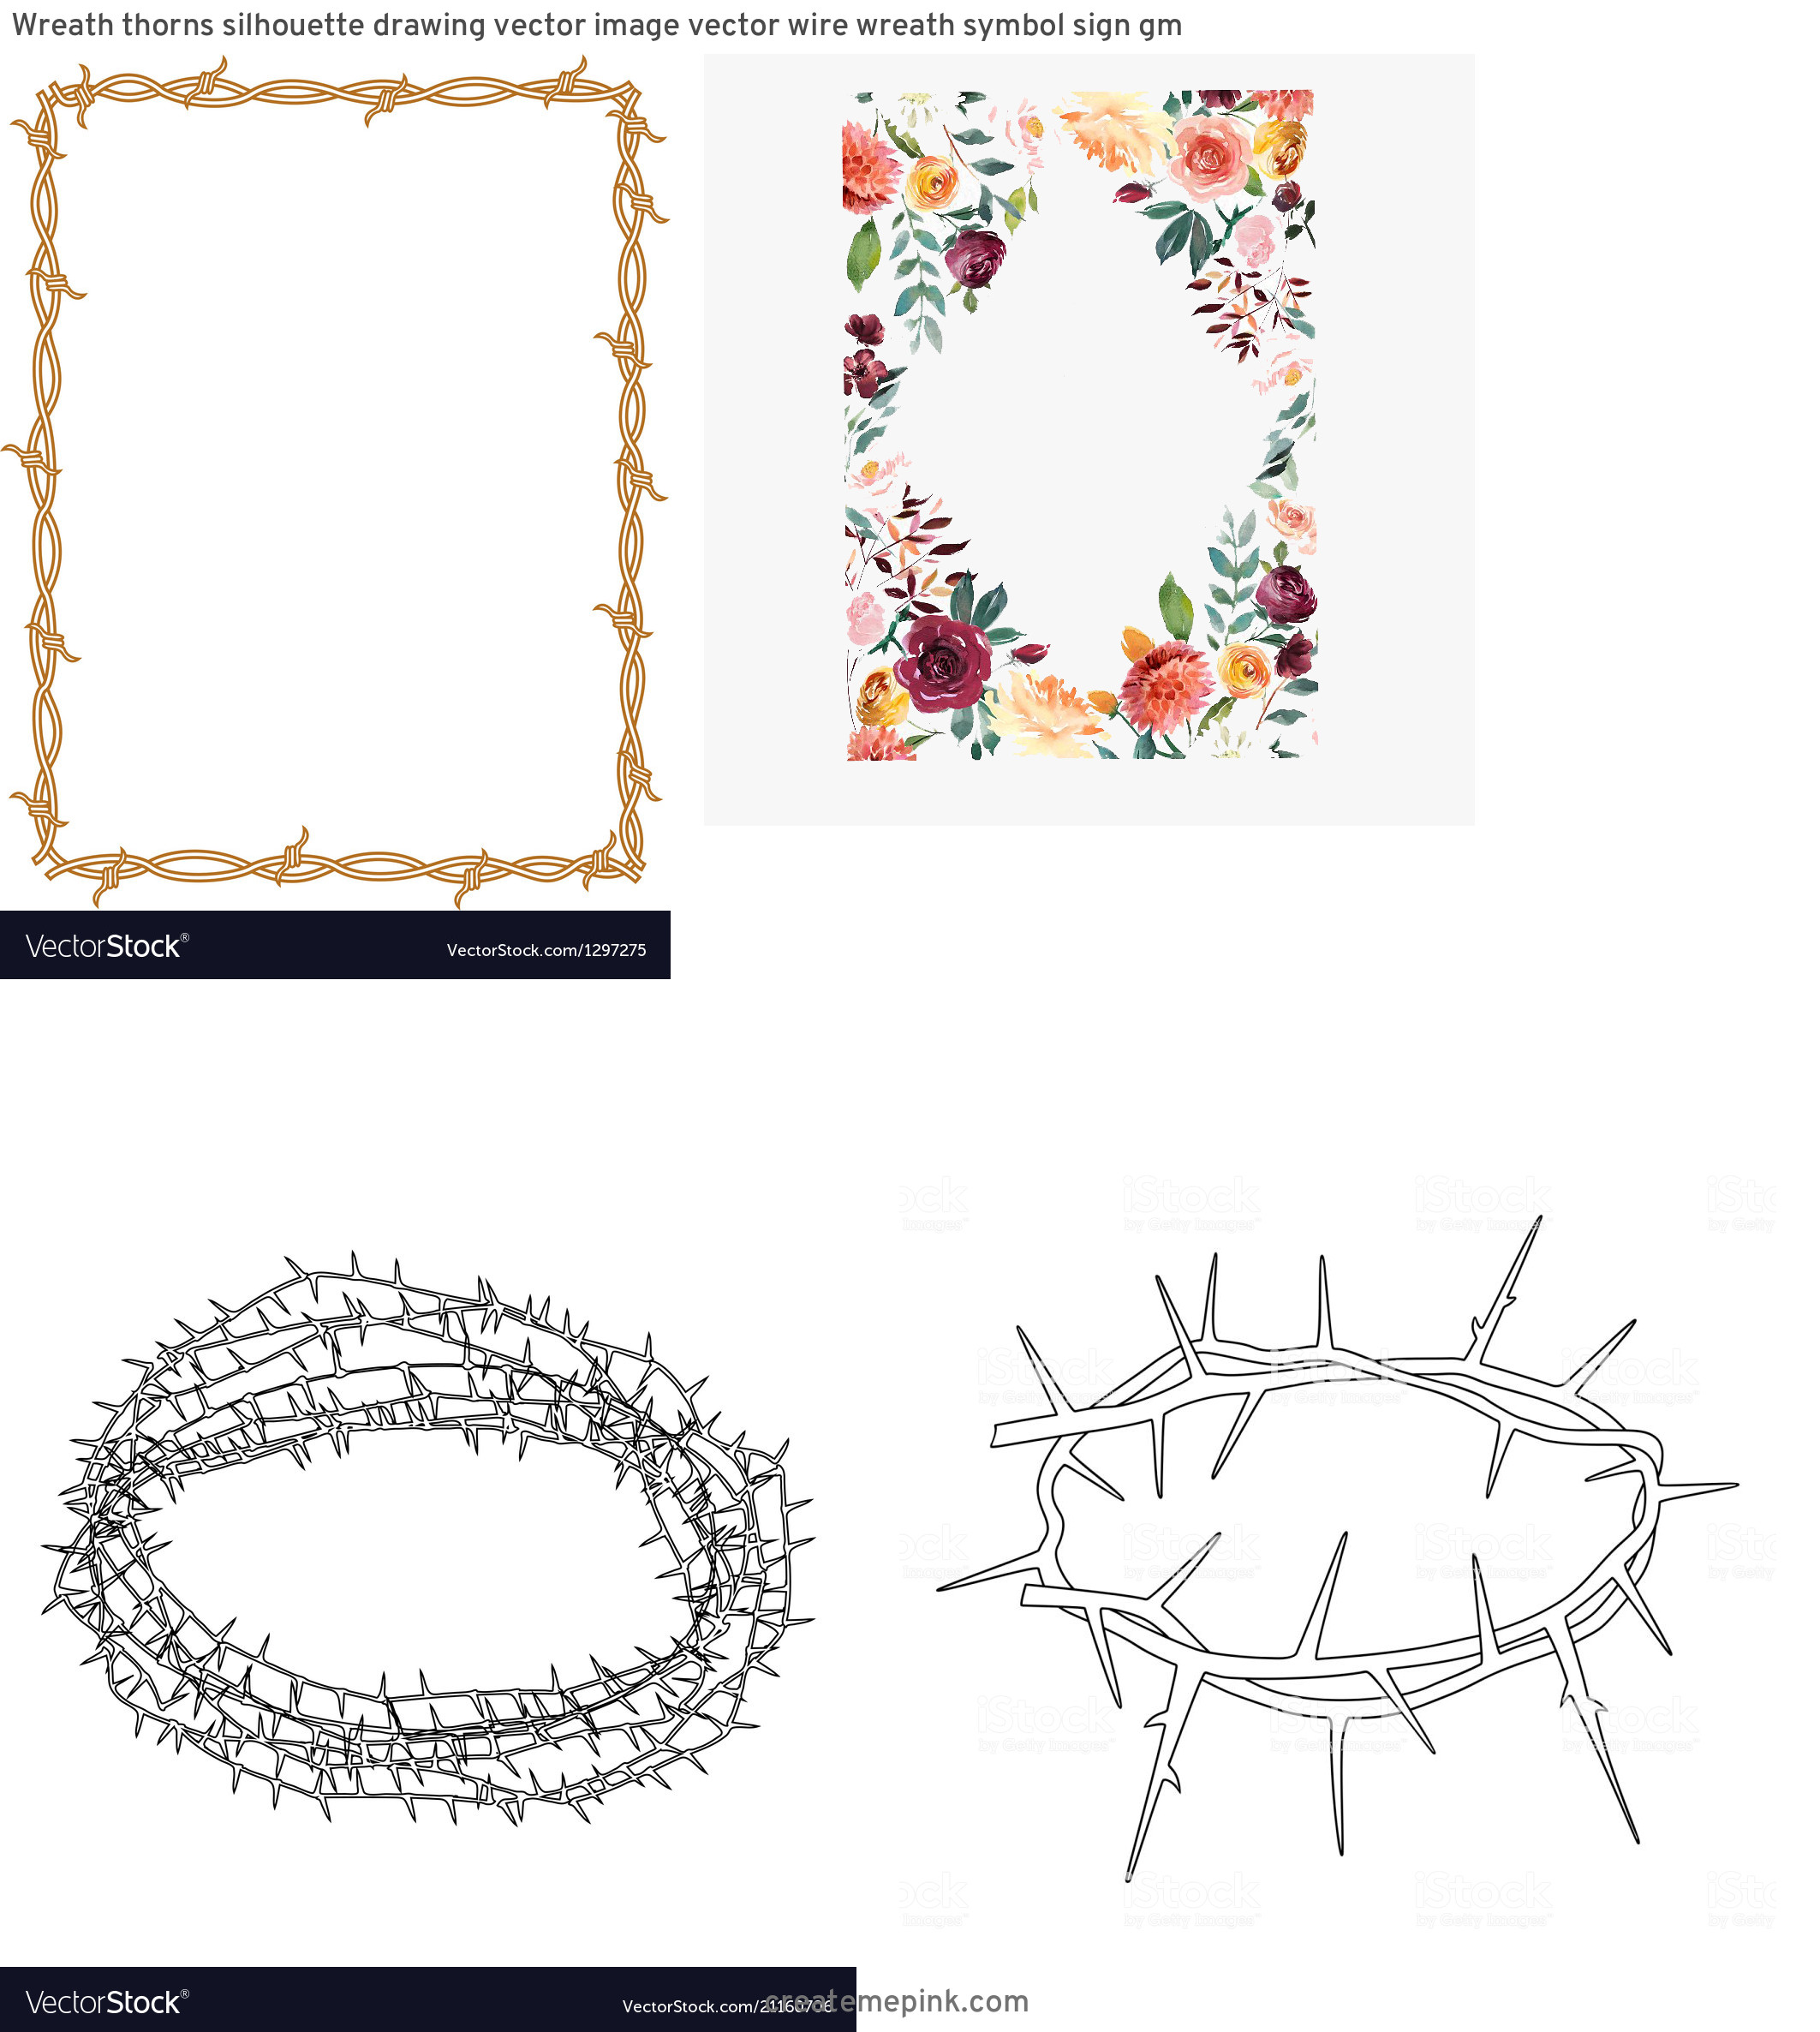 Barb Wire Wreath Vector: Wreath Thorns Silhouette Drawing Vector Image Vector Wire Wreath Symbol Sign Gm